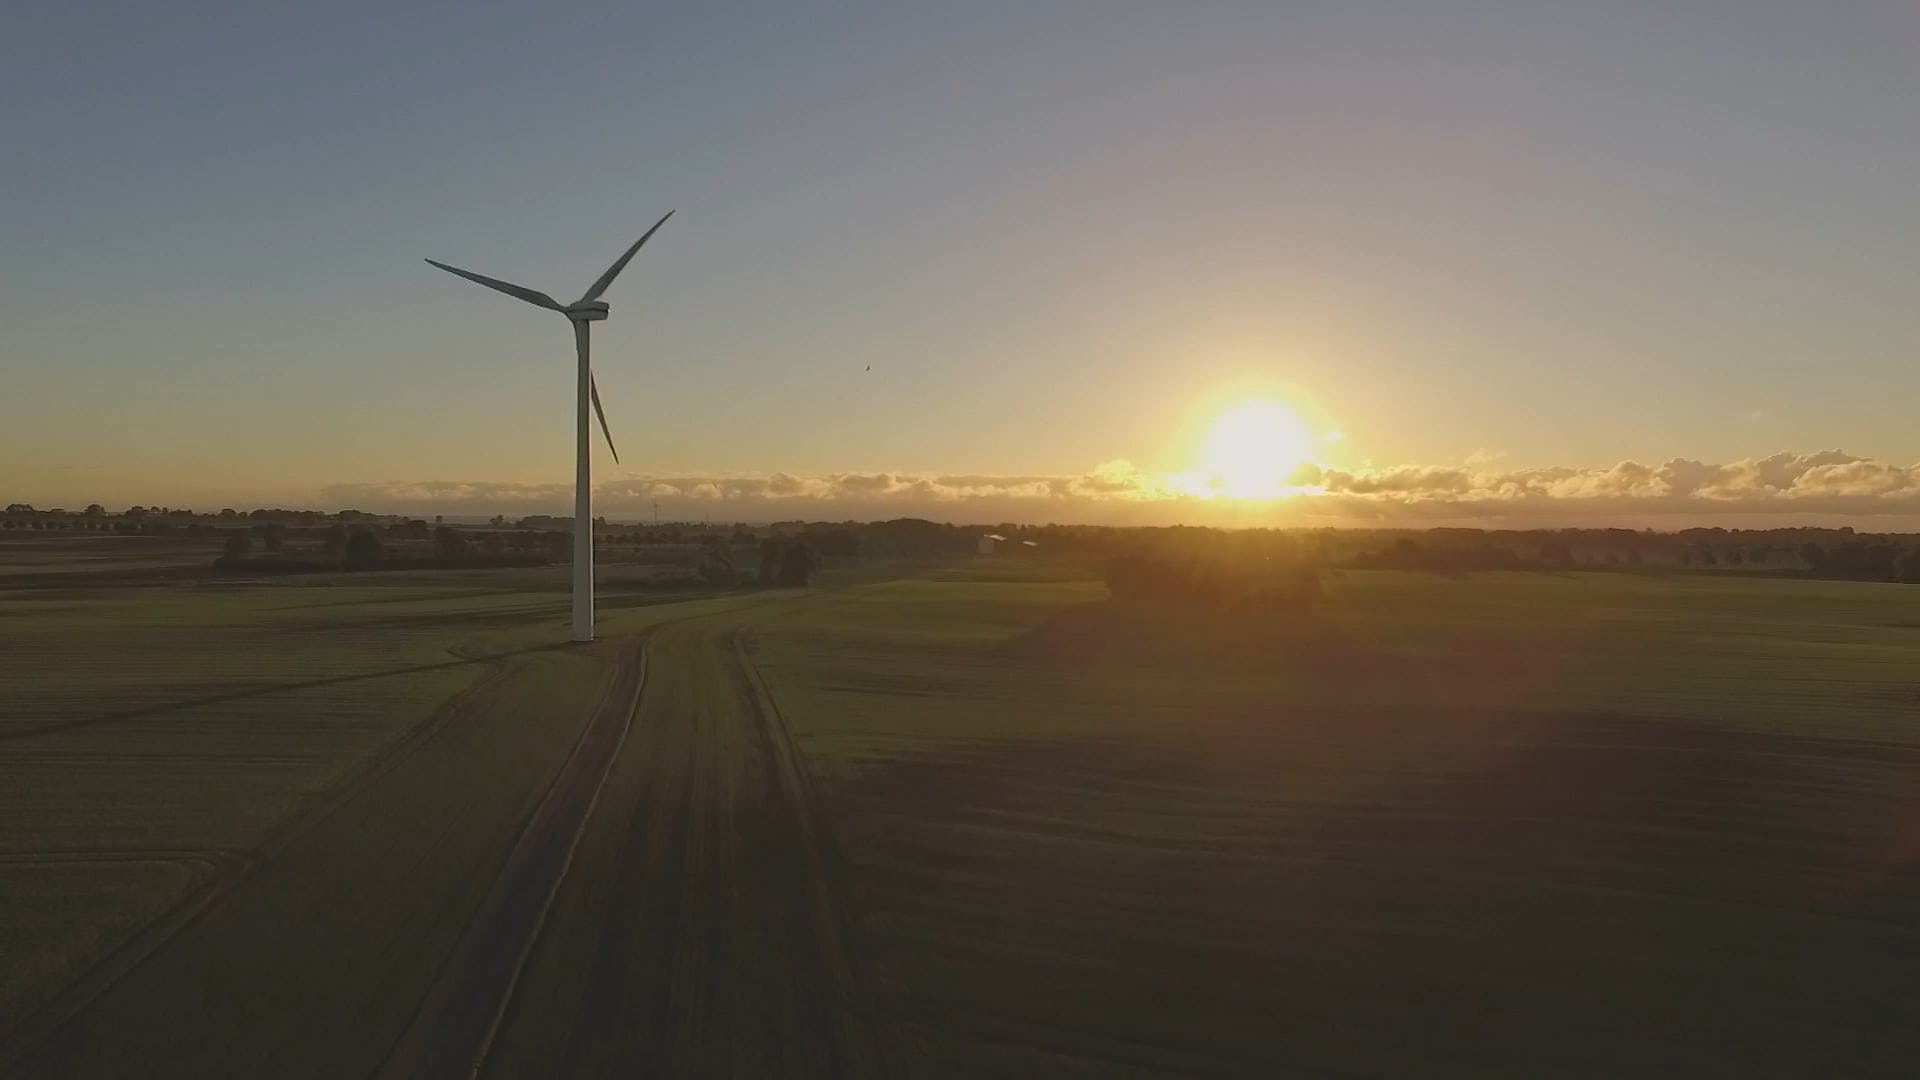 Wind Turbine on a Field at Sunrise